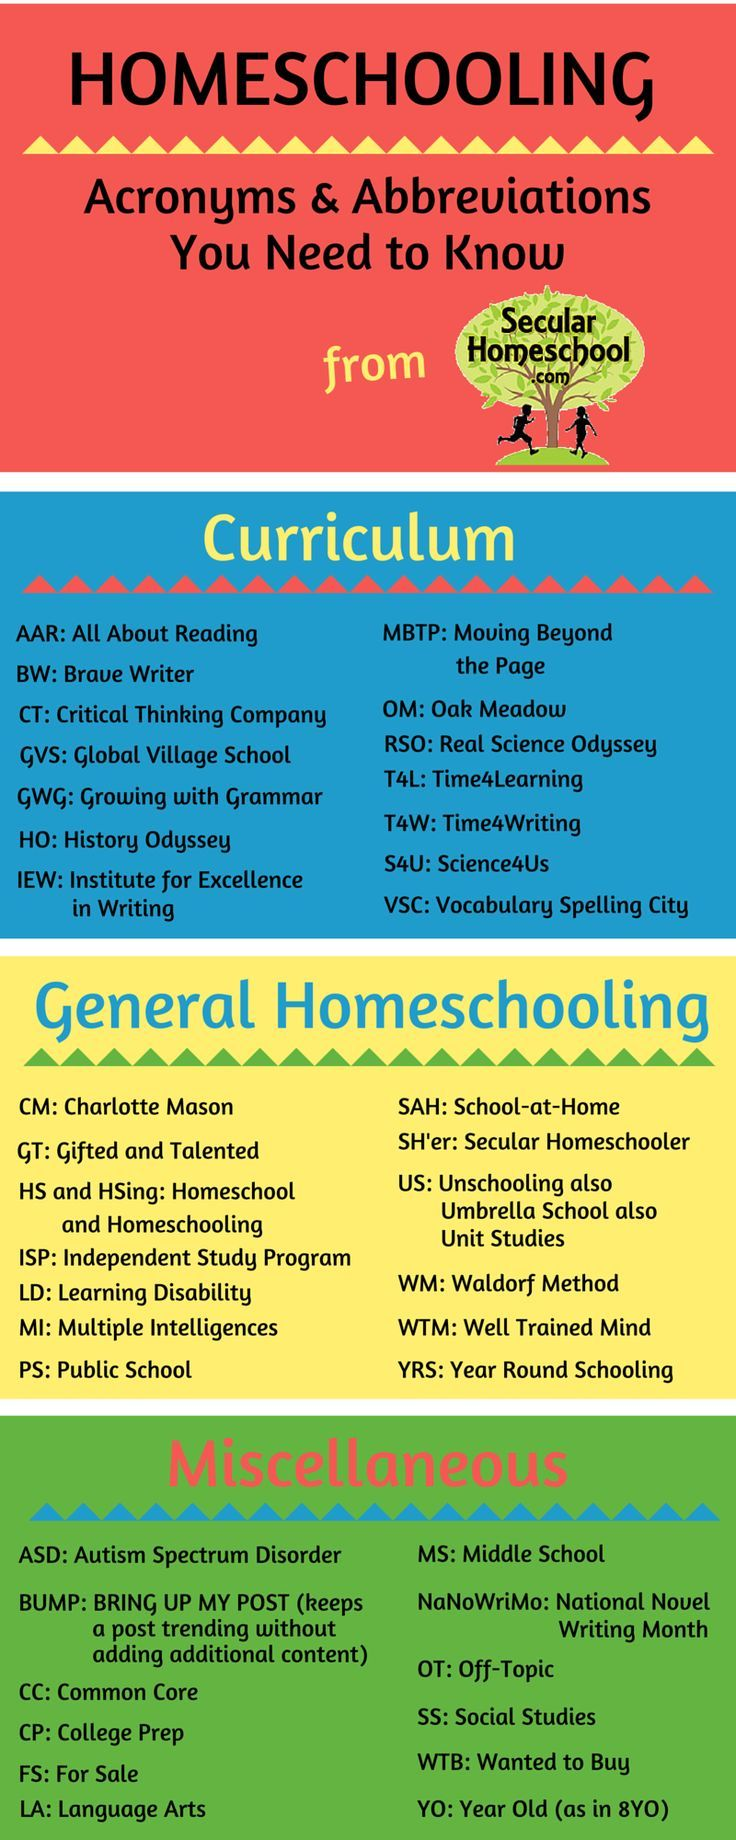 finally  an infographic that helps make sense of all the homeschool acronyms and abbreviations